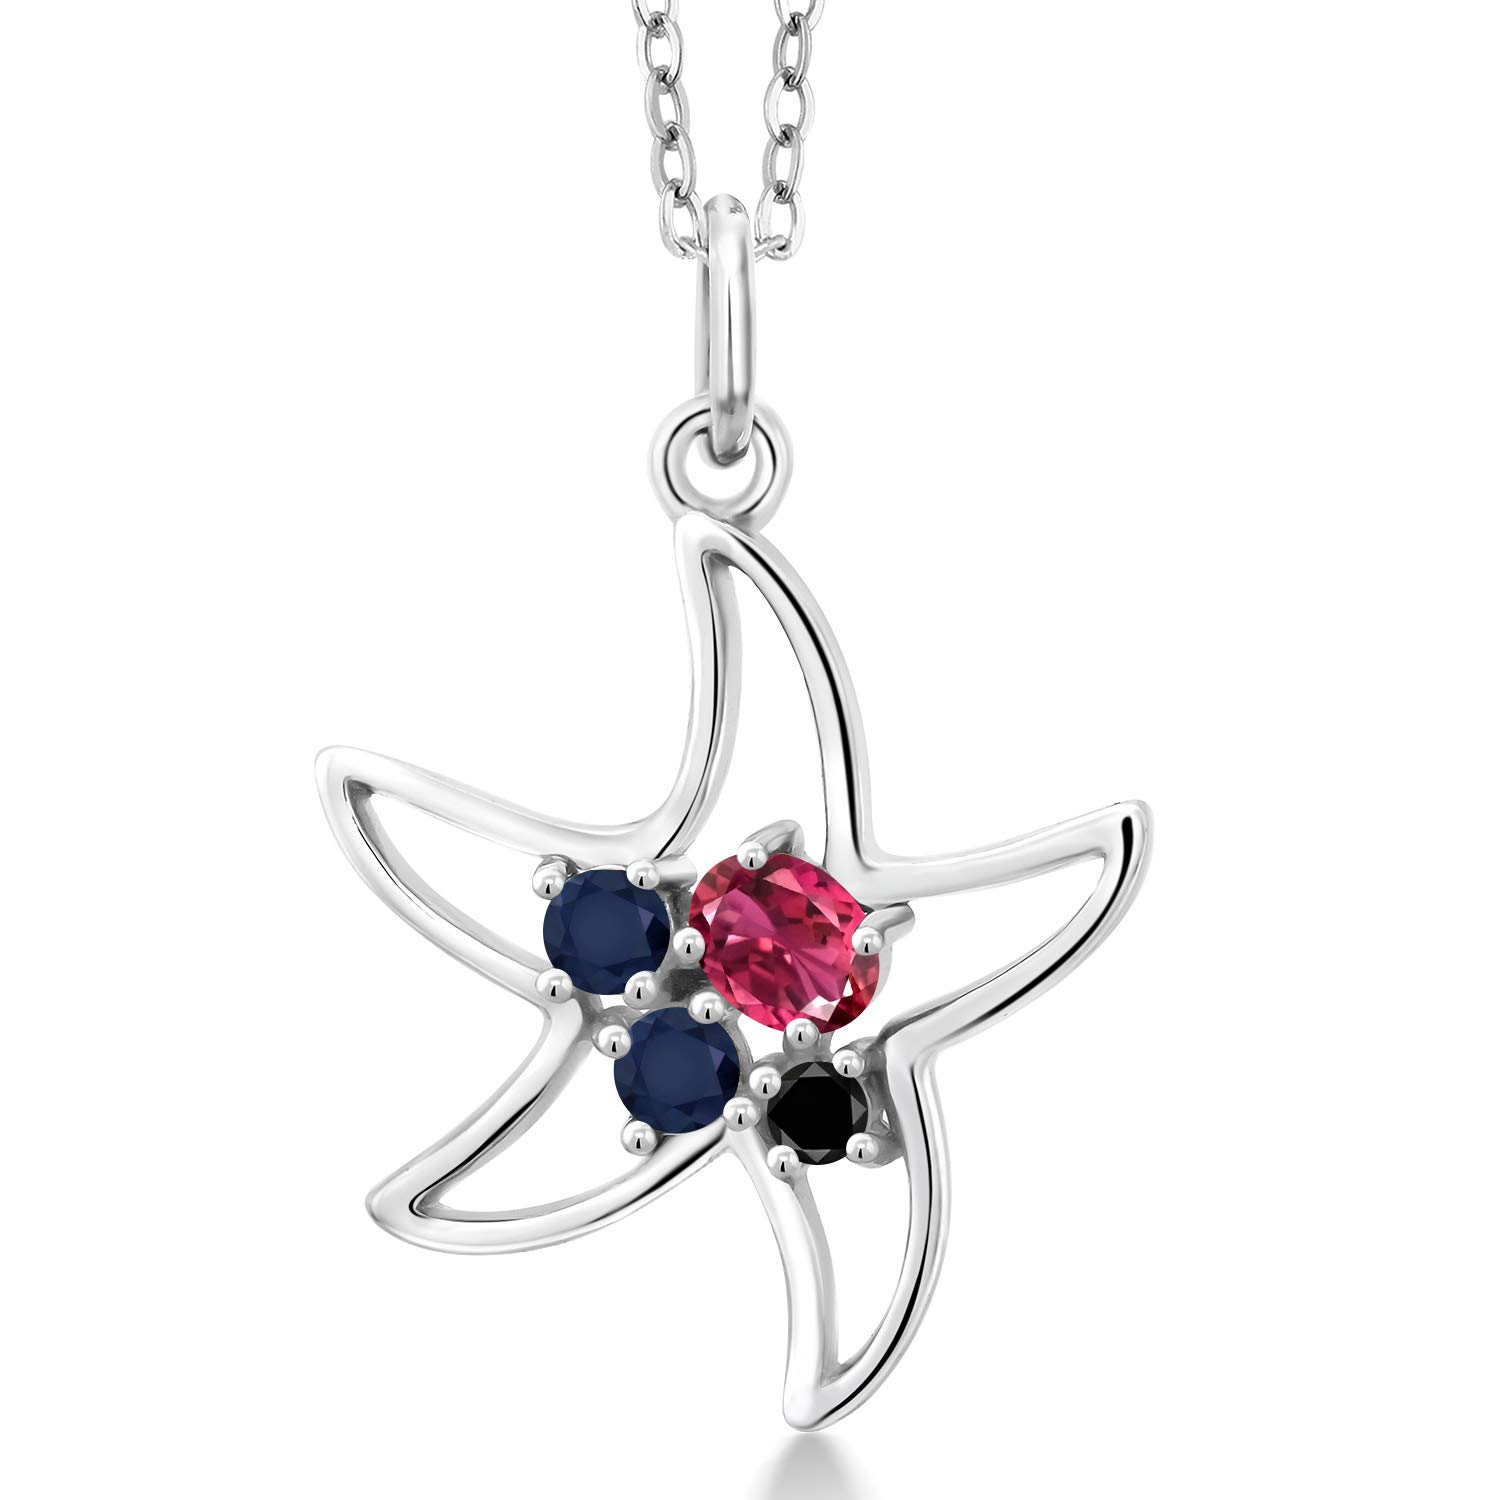 Gem Stone King 0.28 Ct Oval Pink Tourmaline Blue Sapphire 925 Sterling Silver Starfish Necklace